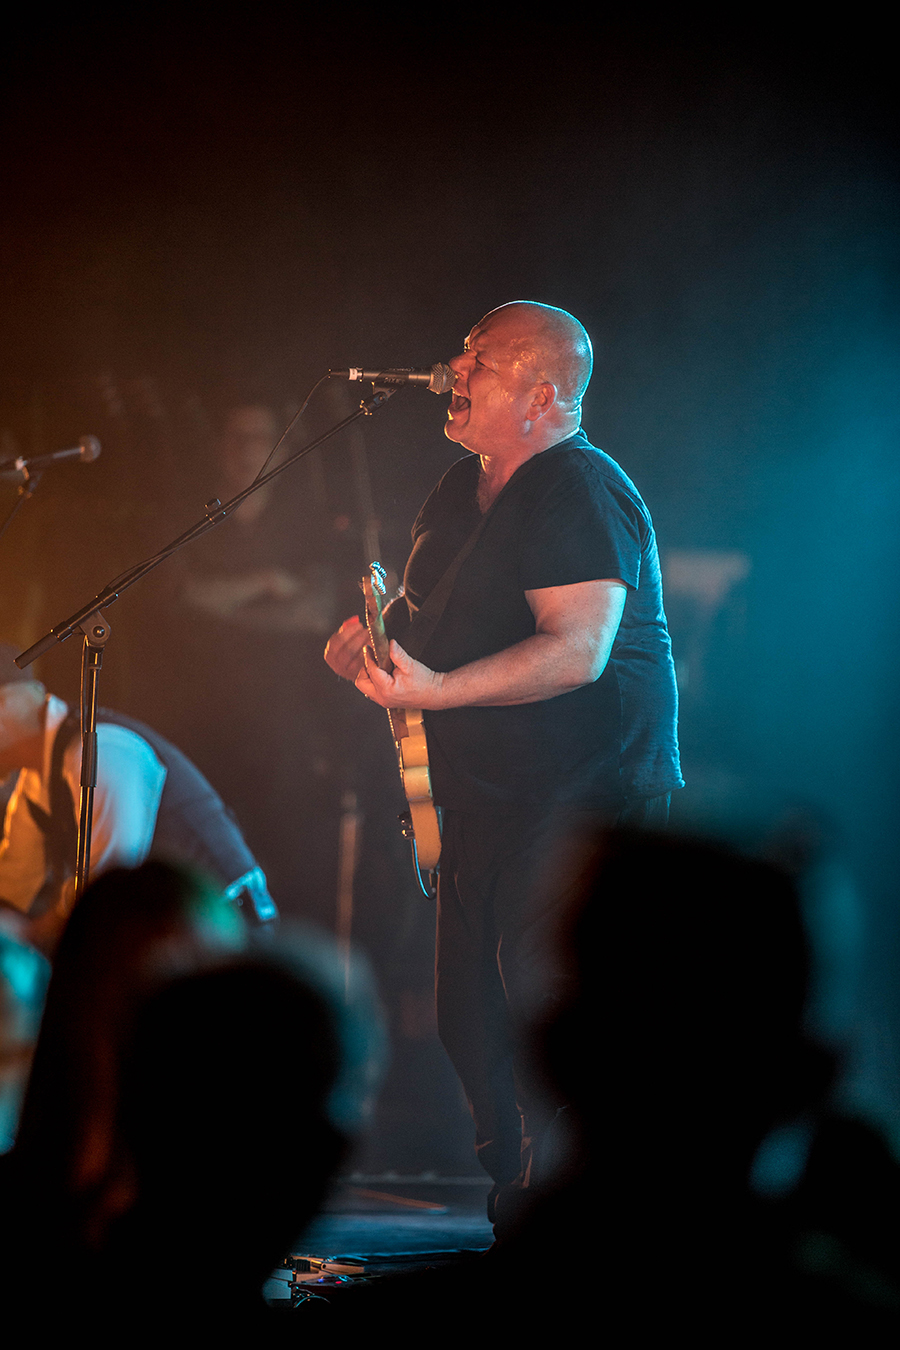 4I0A4046 The Pixies sell out the Chicago Theatre and Wow fans with a stellar show